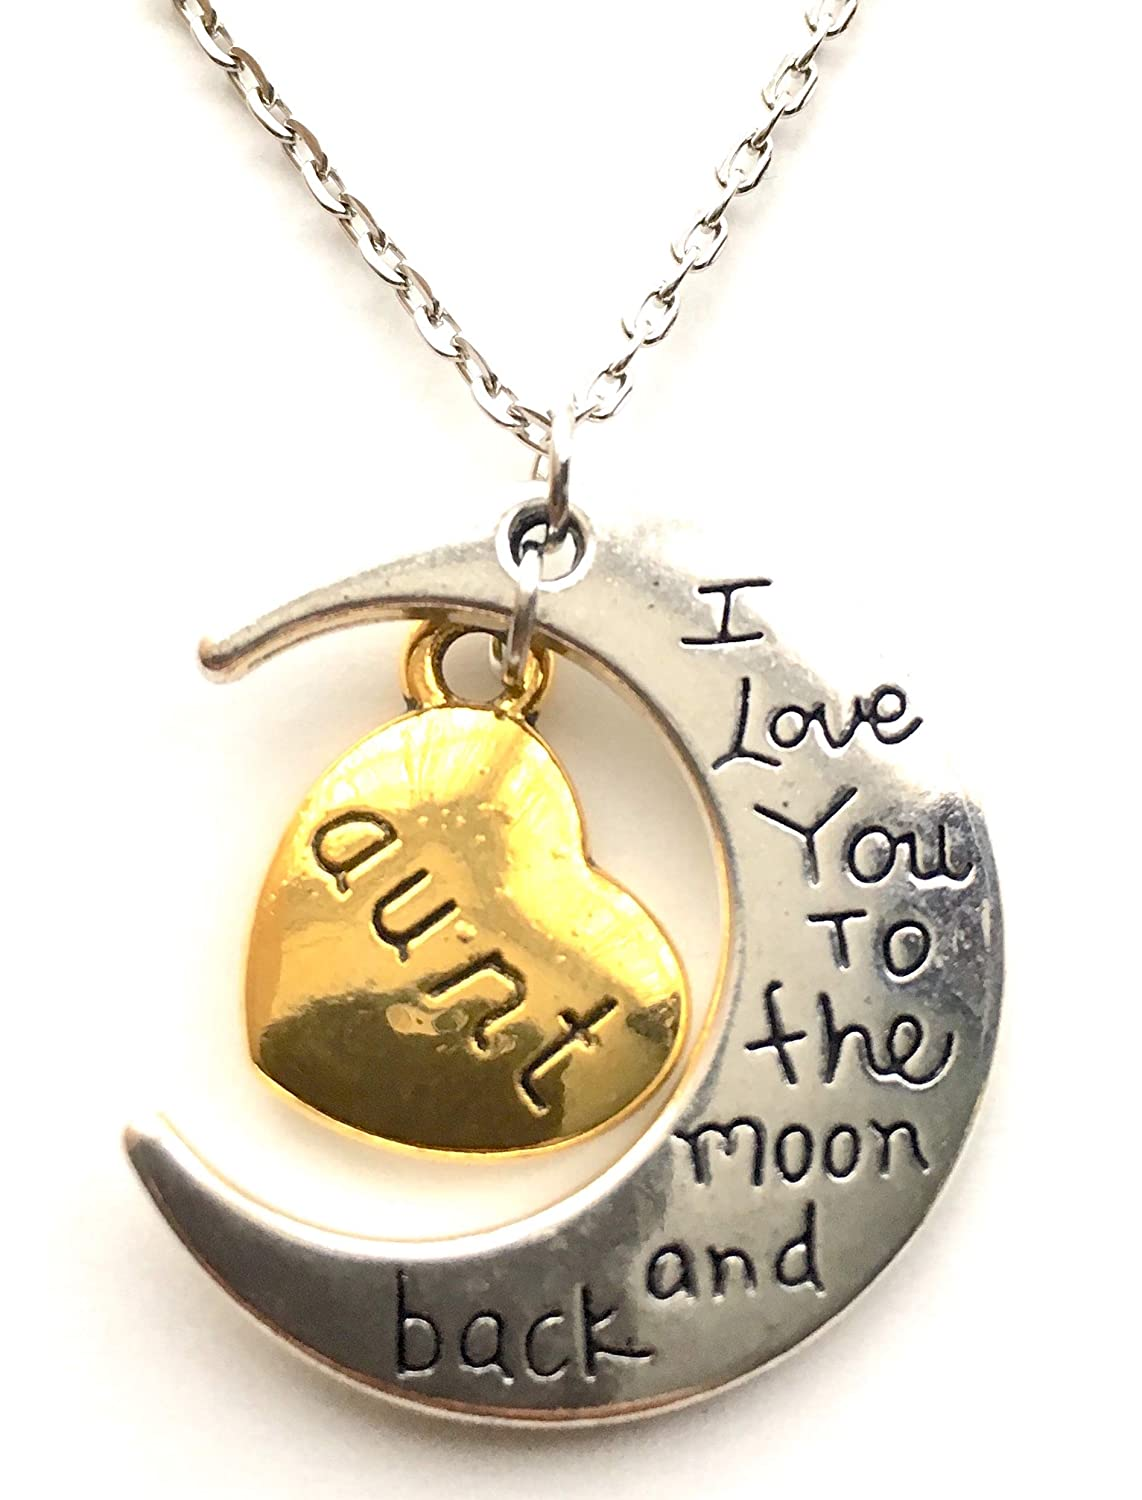 4 I love you to the moon and back charms antique silver tone M717